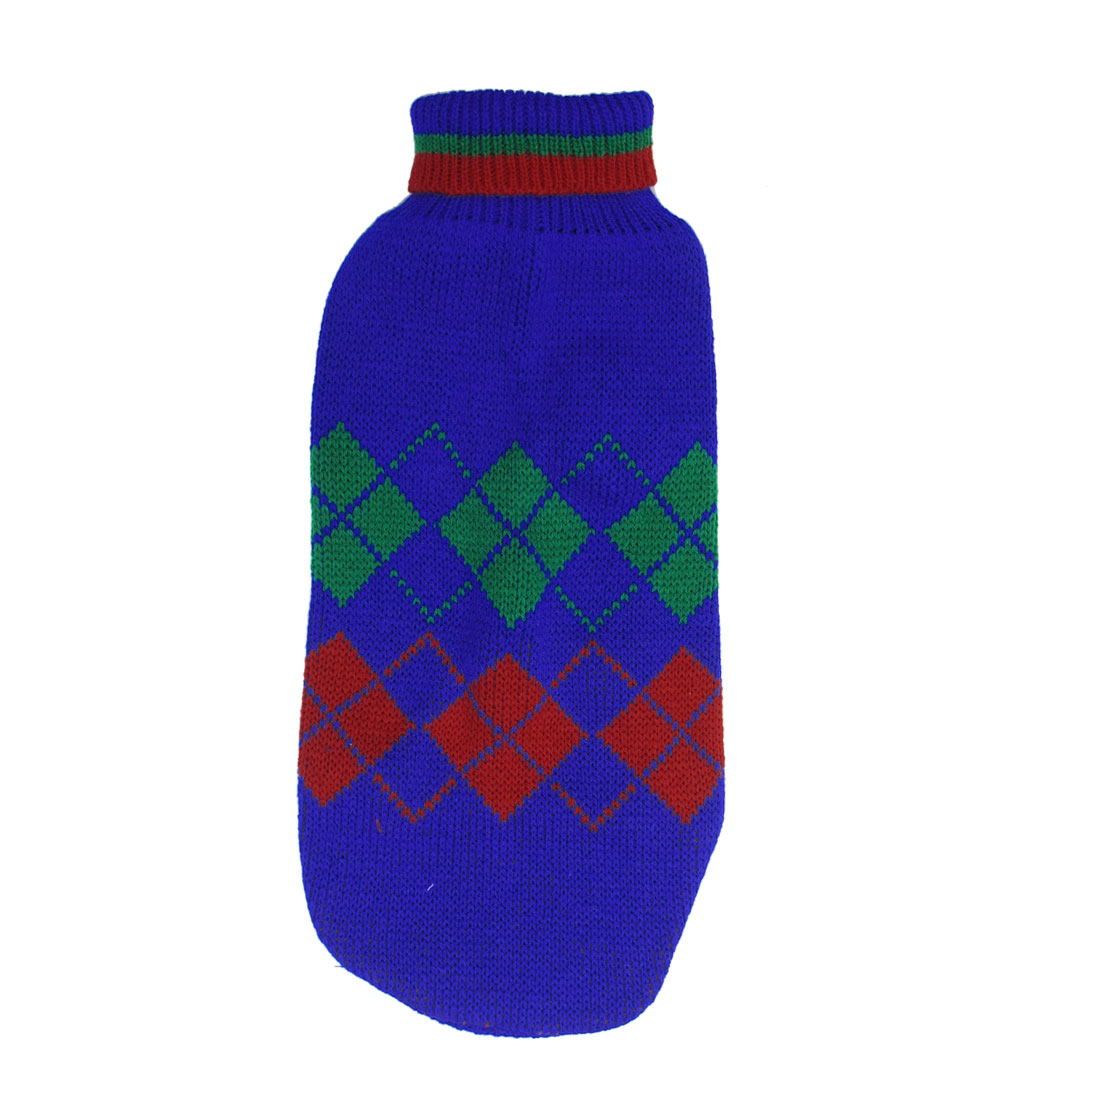 Winter Warm Blue Red Green Rhombus Pattern Turtleneck Pet Apparel Sweater XL